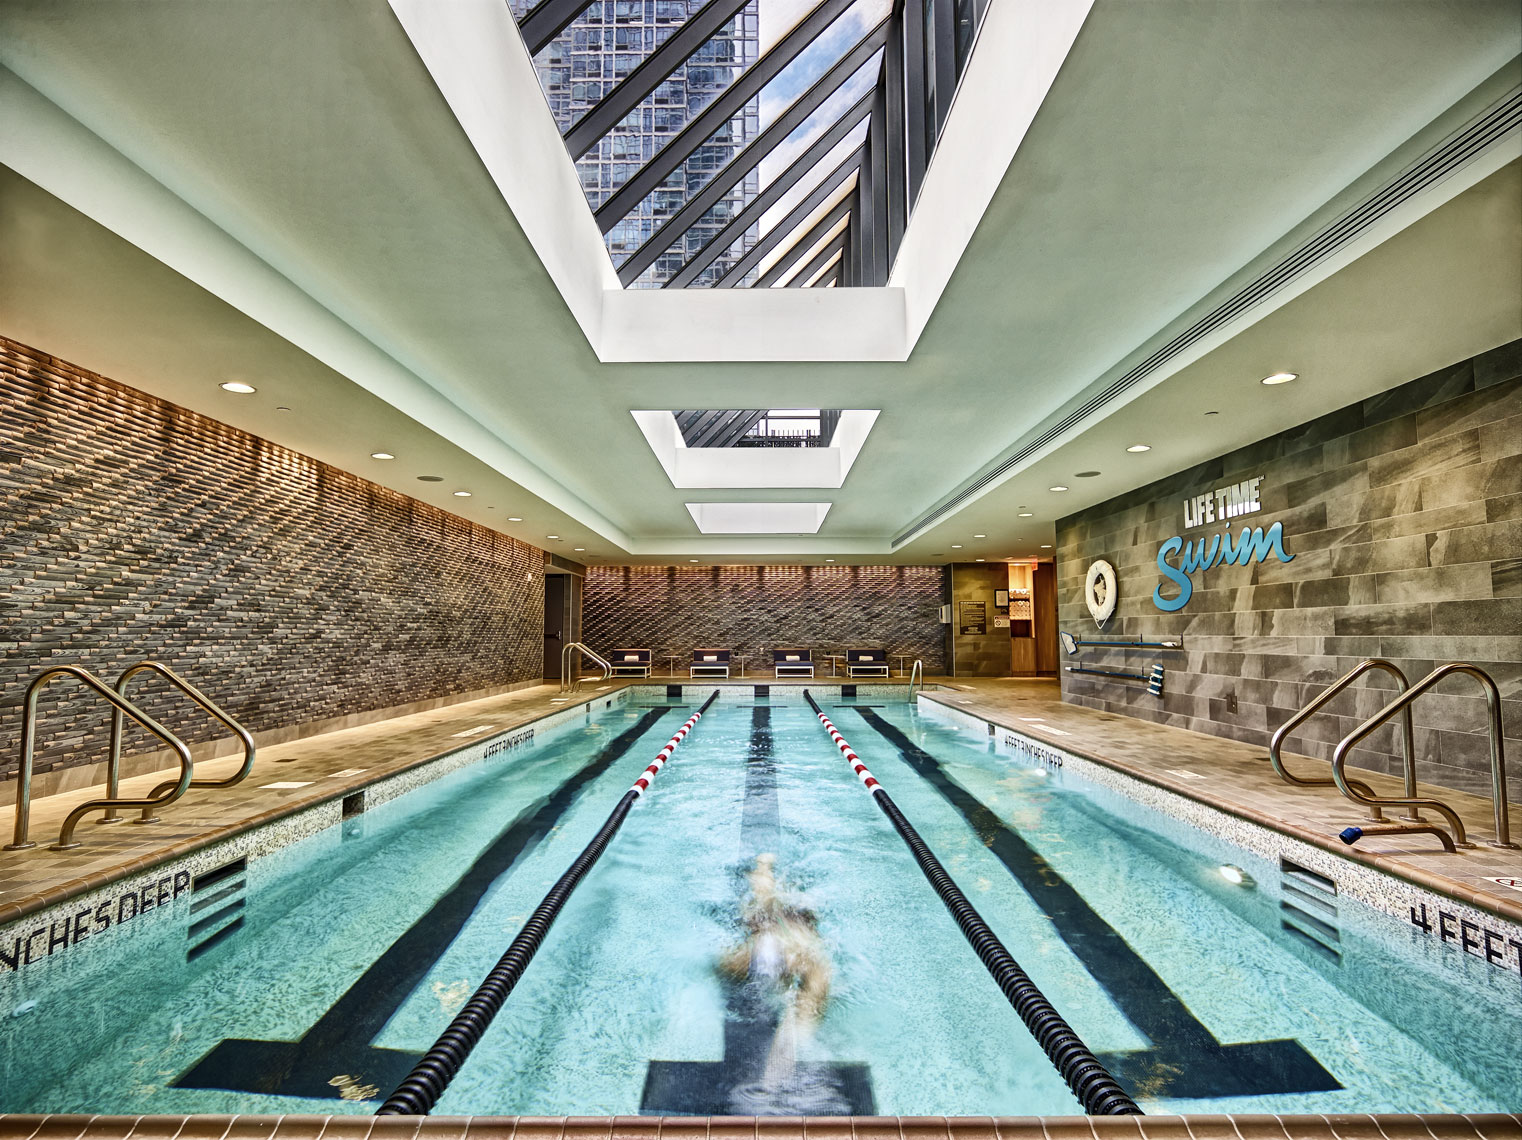 LifeTime Fitness/lap pool/architectural photography